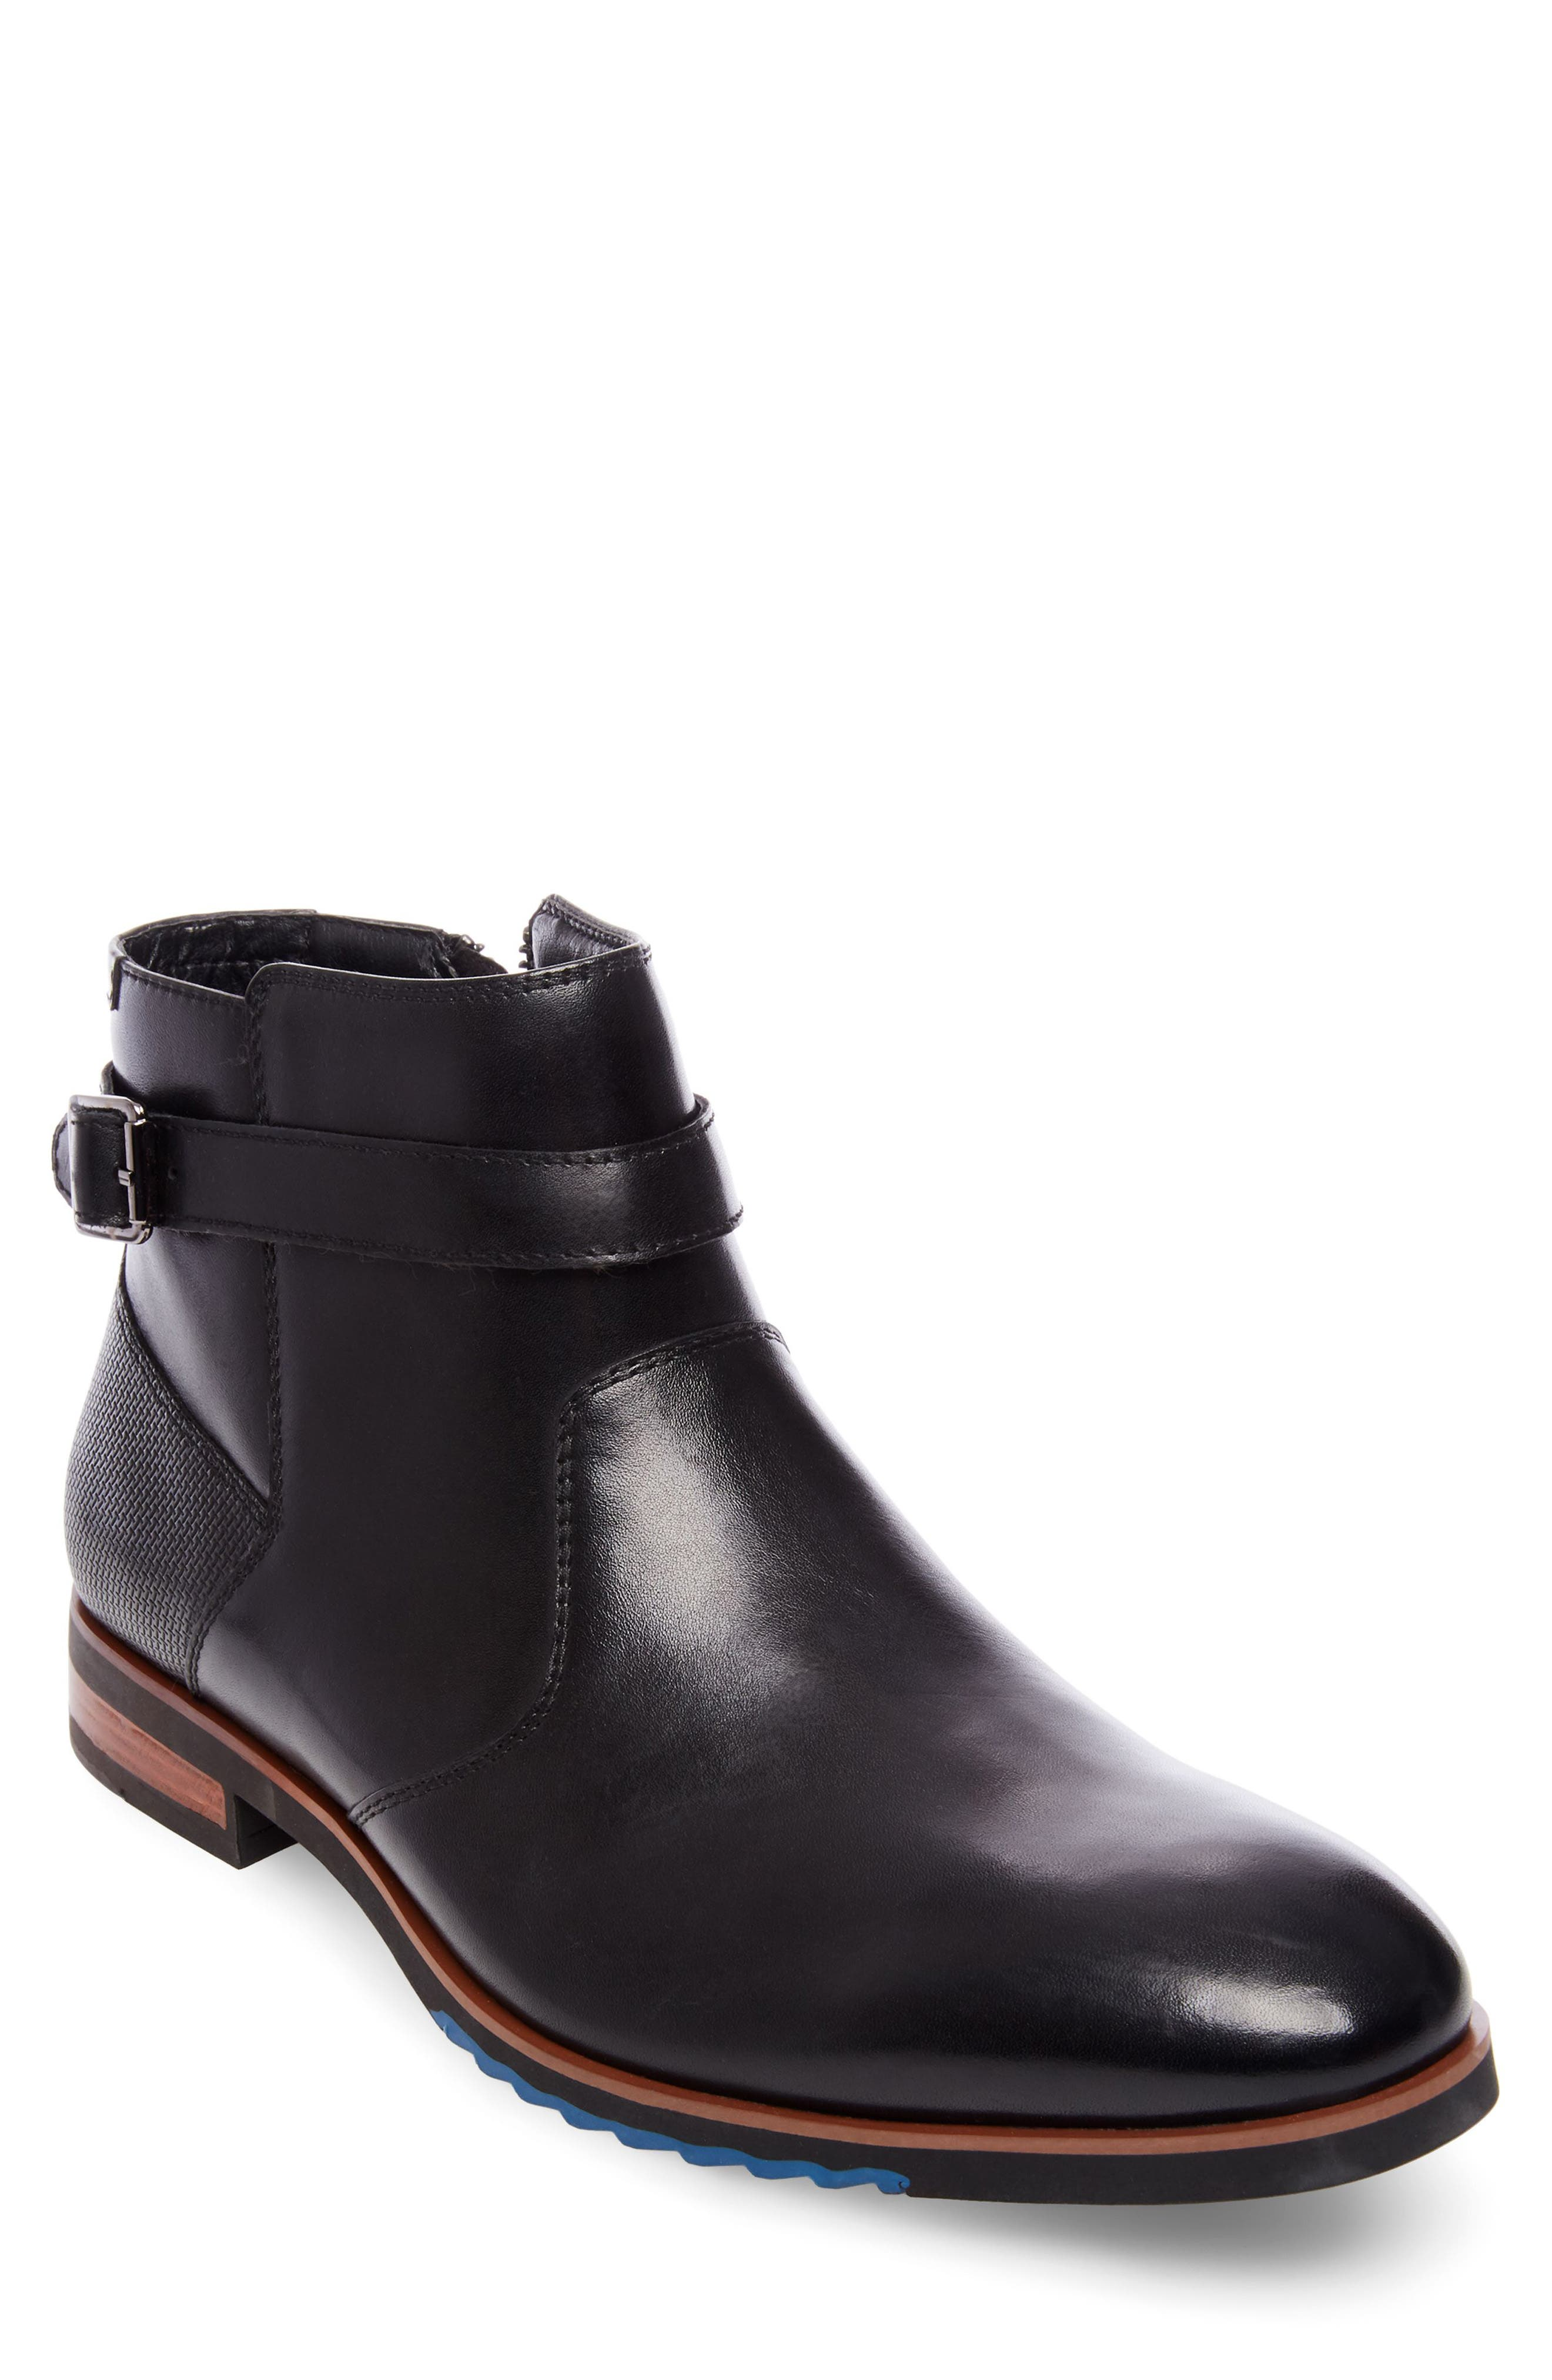 Levant Boot,                         Main,                         color, Black Leather